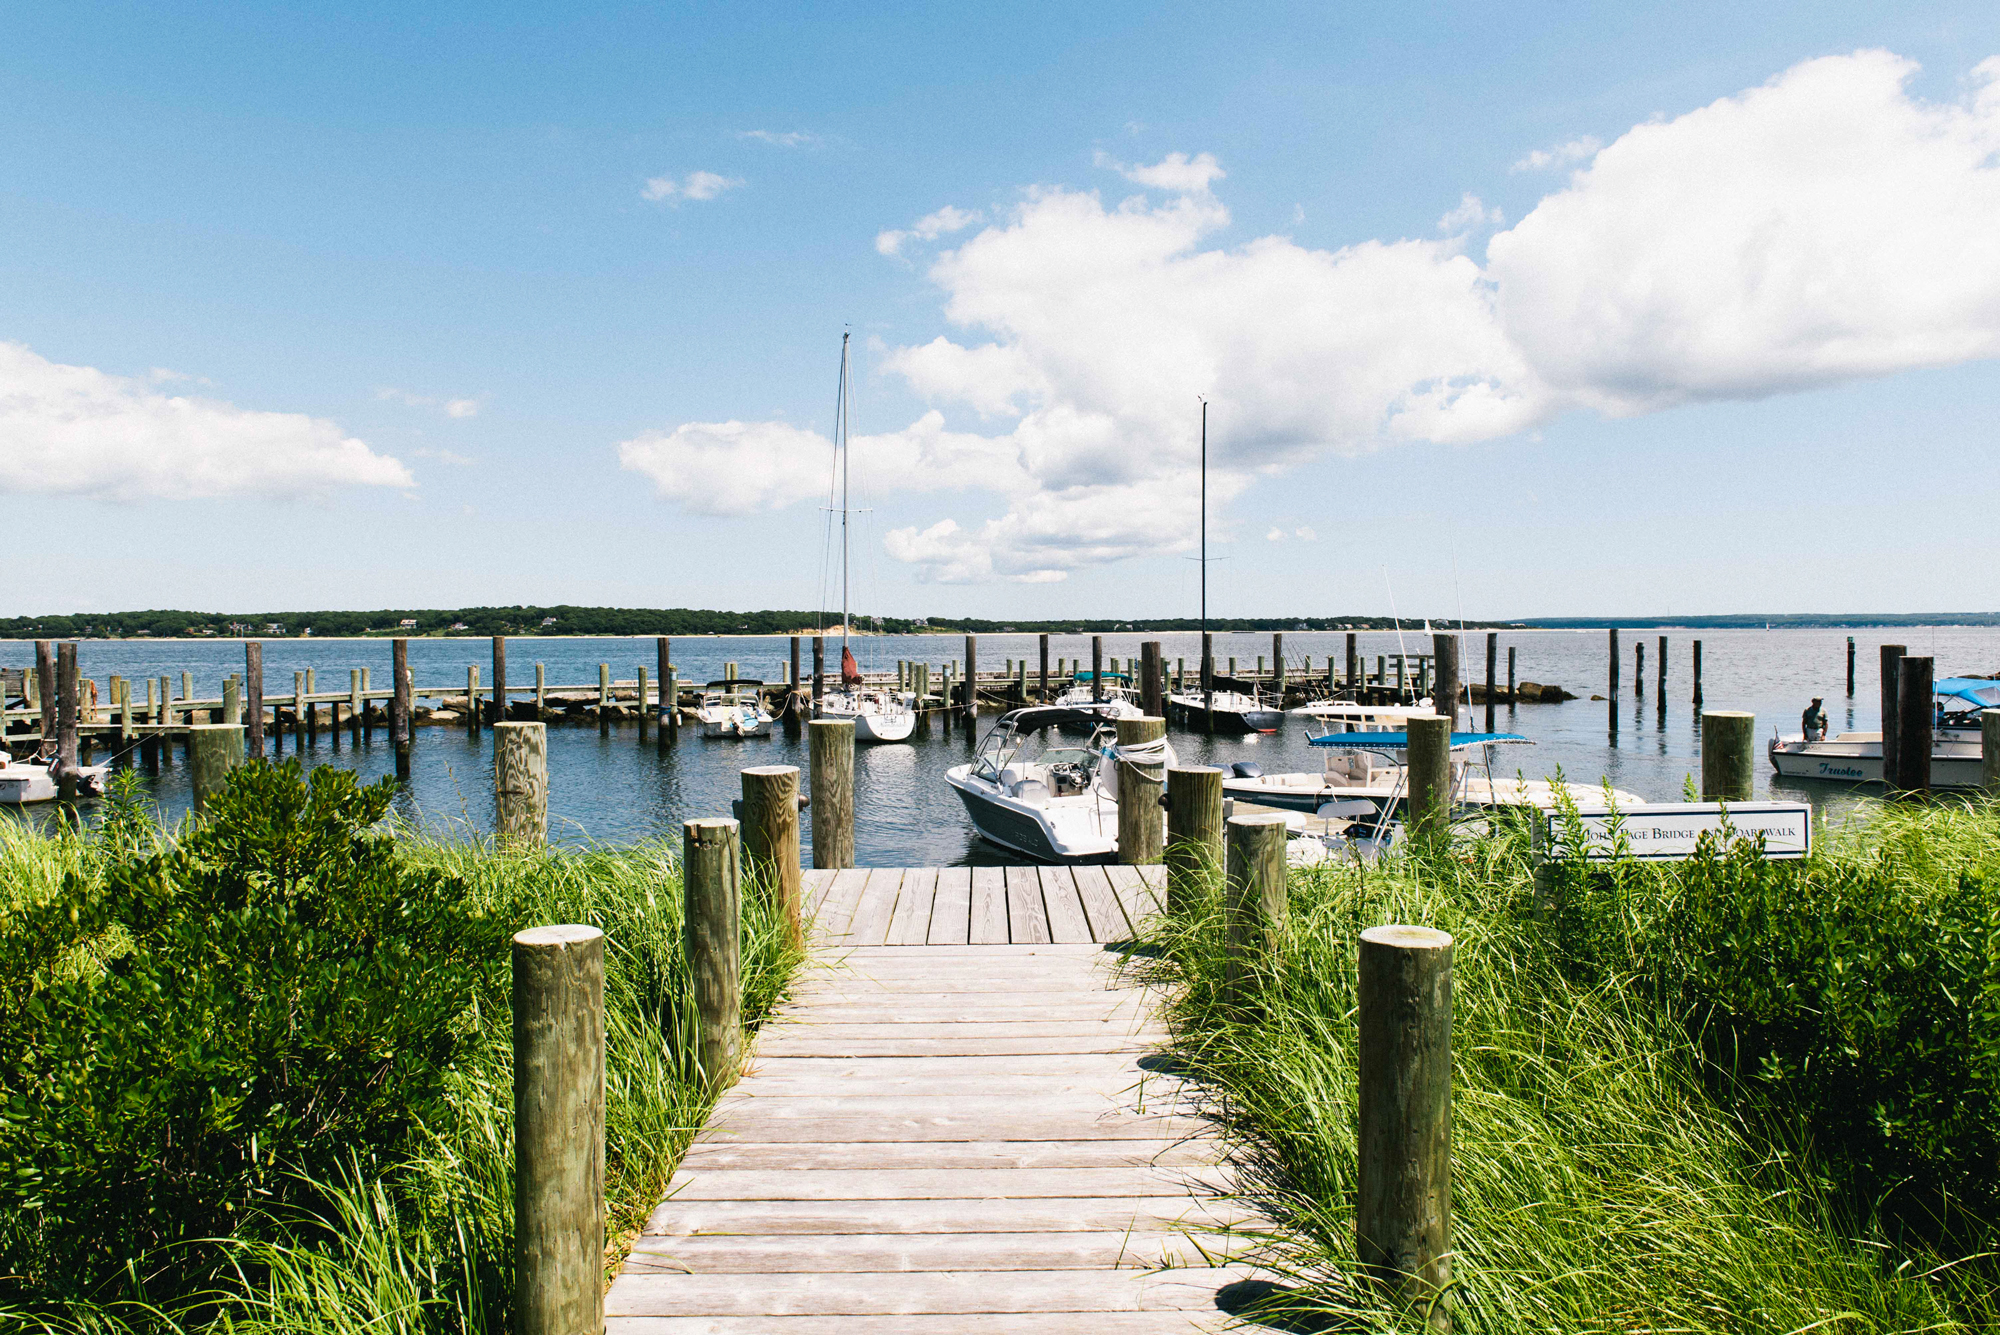 Boats on the Water in Long Island